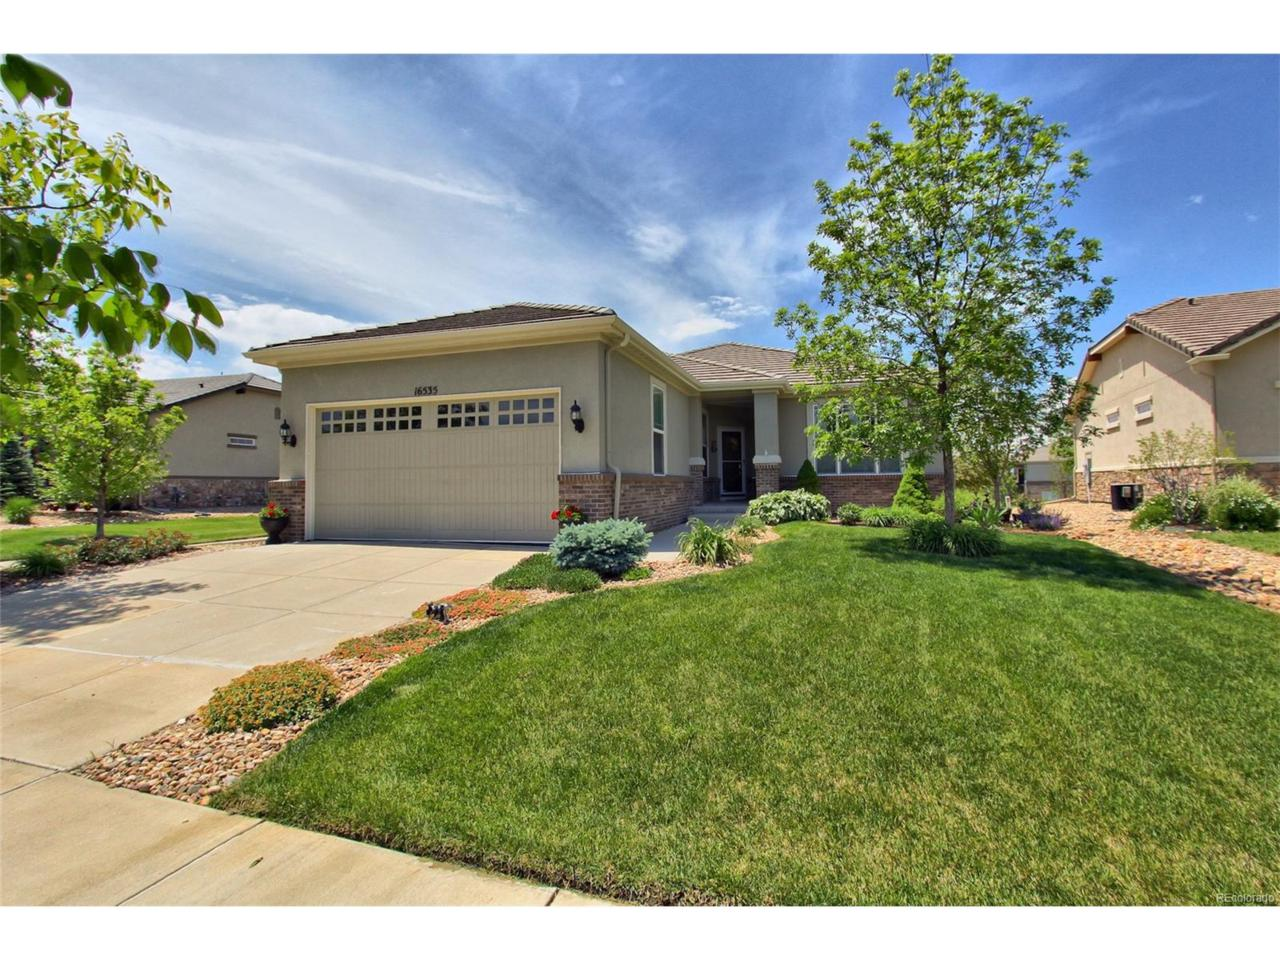 16535 Antero Circle, Broomfield, CO 80023 (MLS #7659581) :: 8z Real Estate